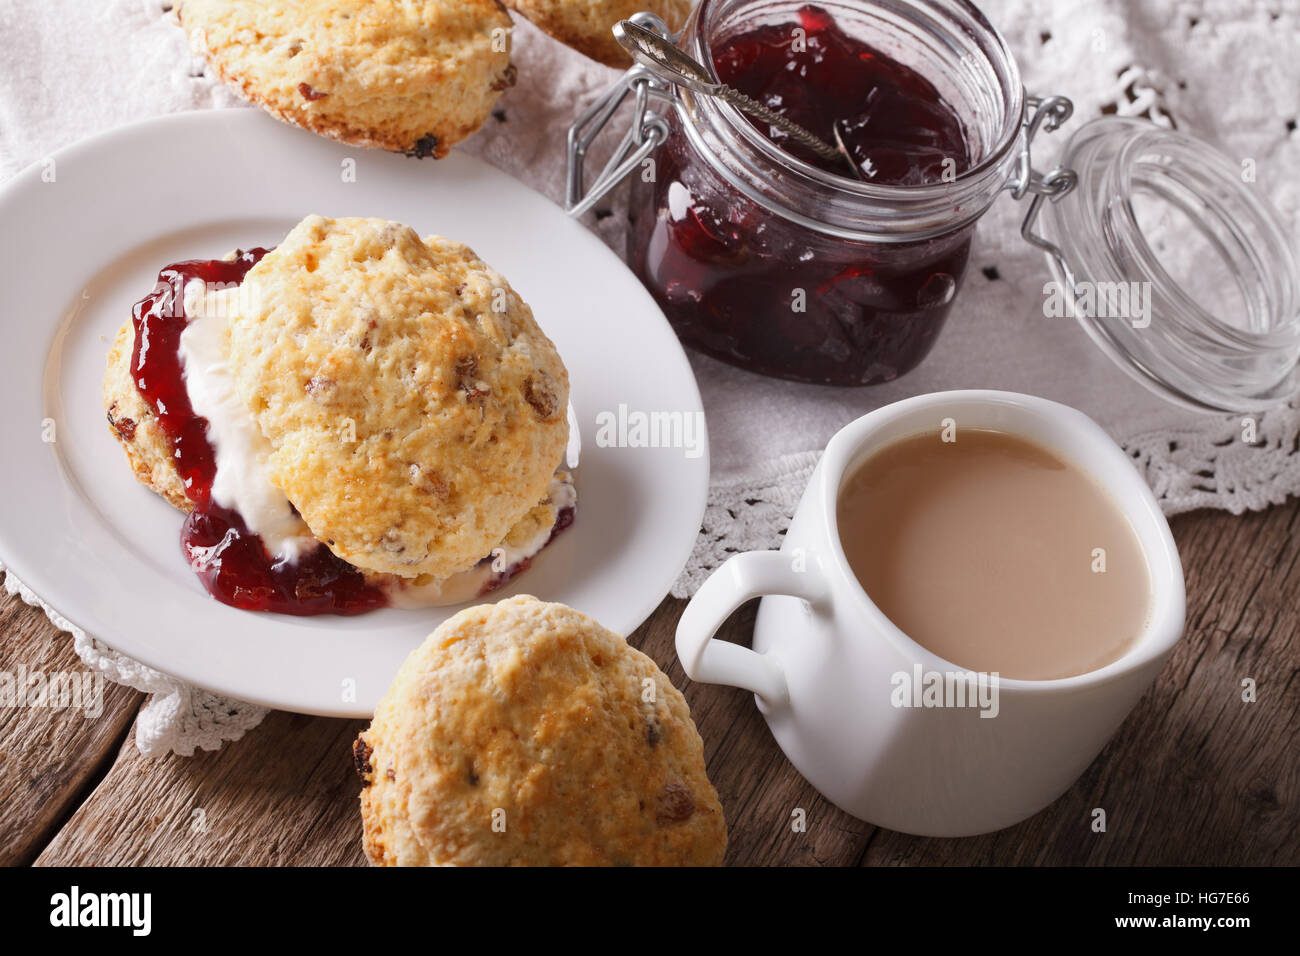 Homemade scones with jam and tea with milk close-up on the table. horizontal - Stock Image